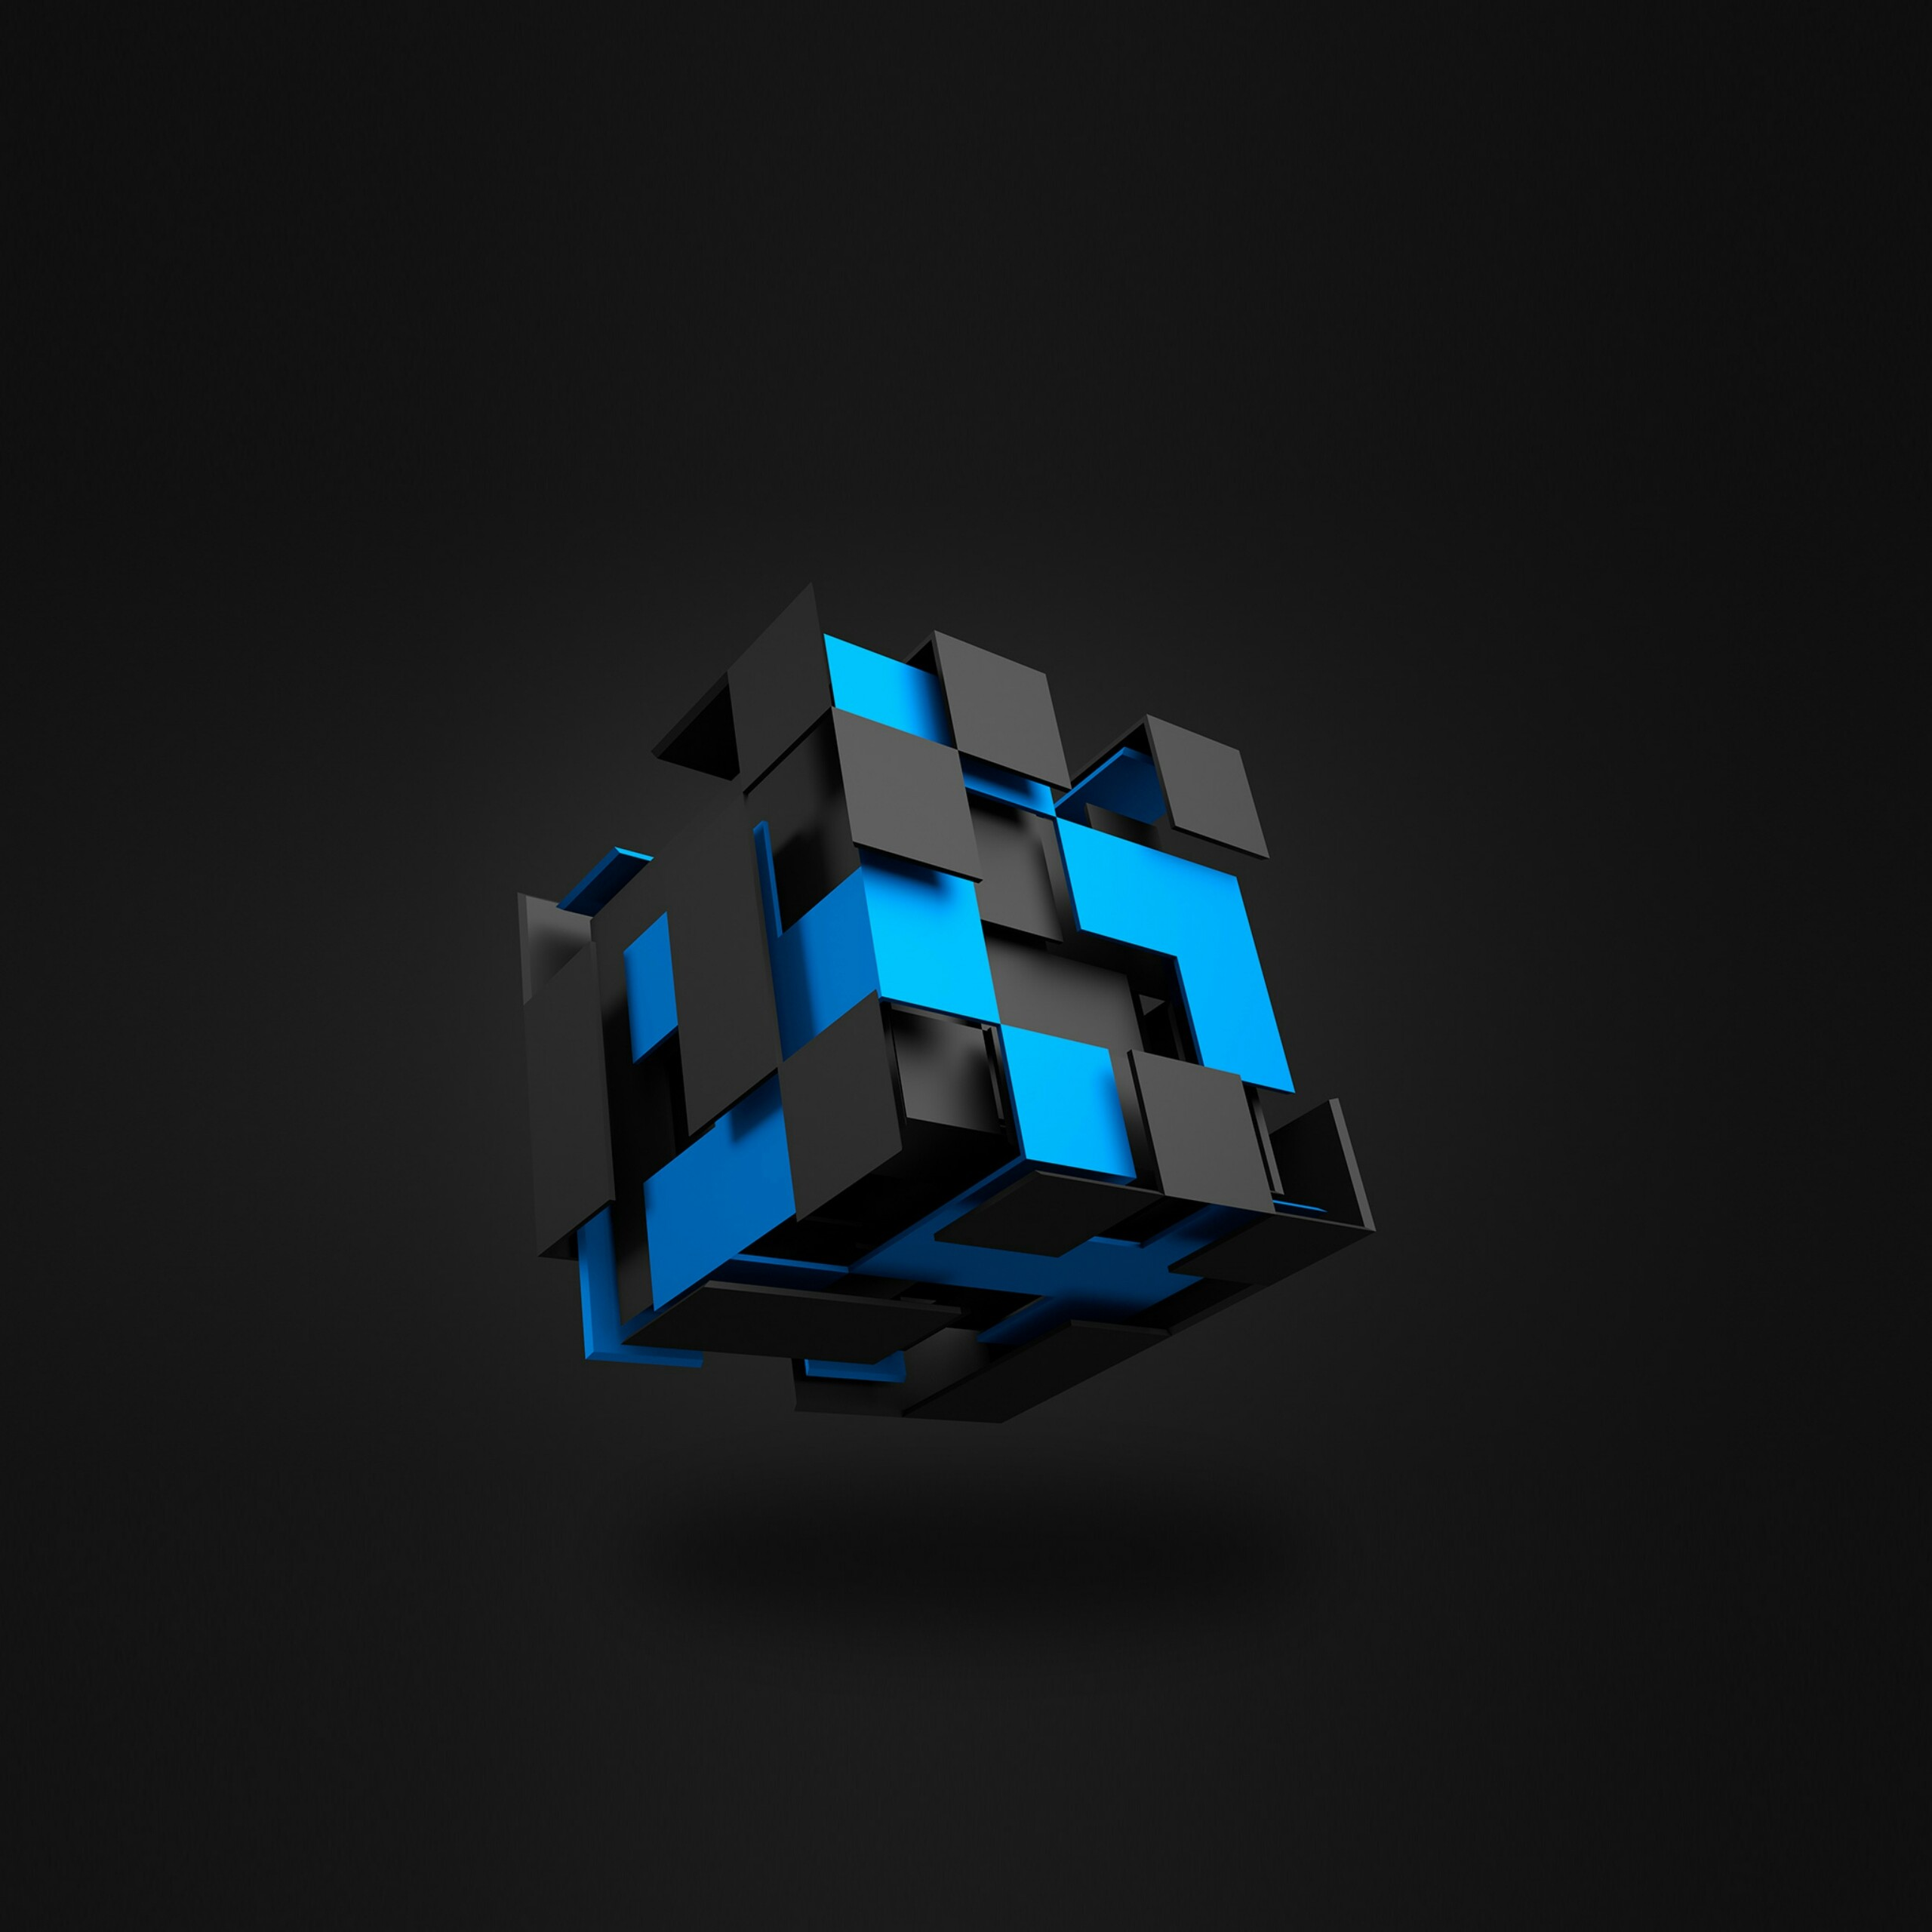 3D Cube In Black And Blue Abstract QHD Wallpaper 2560x2560